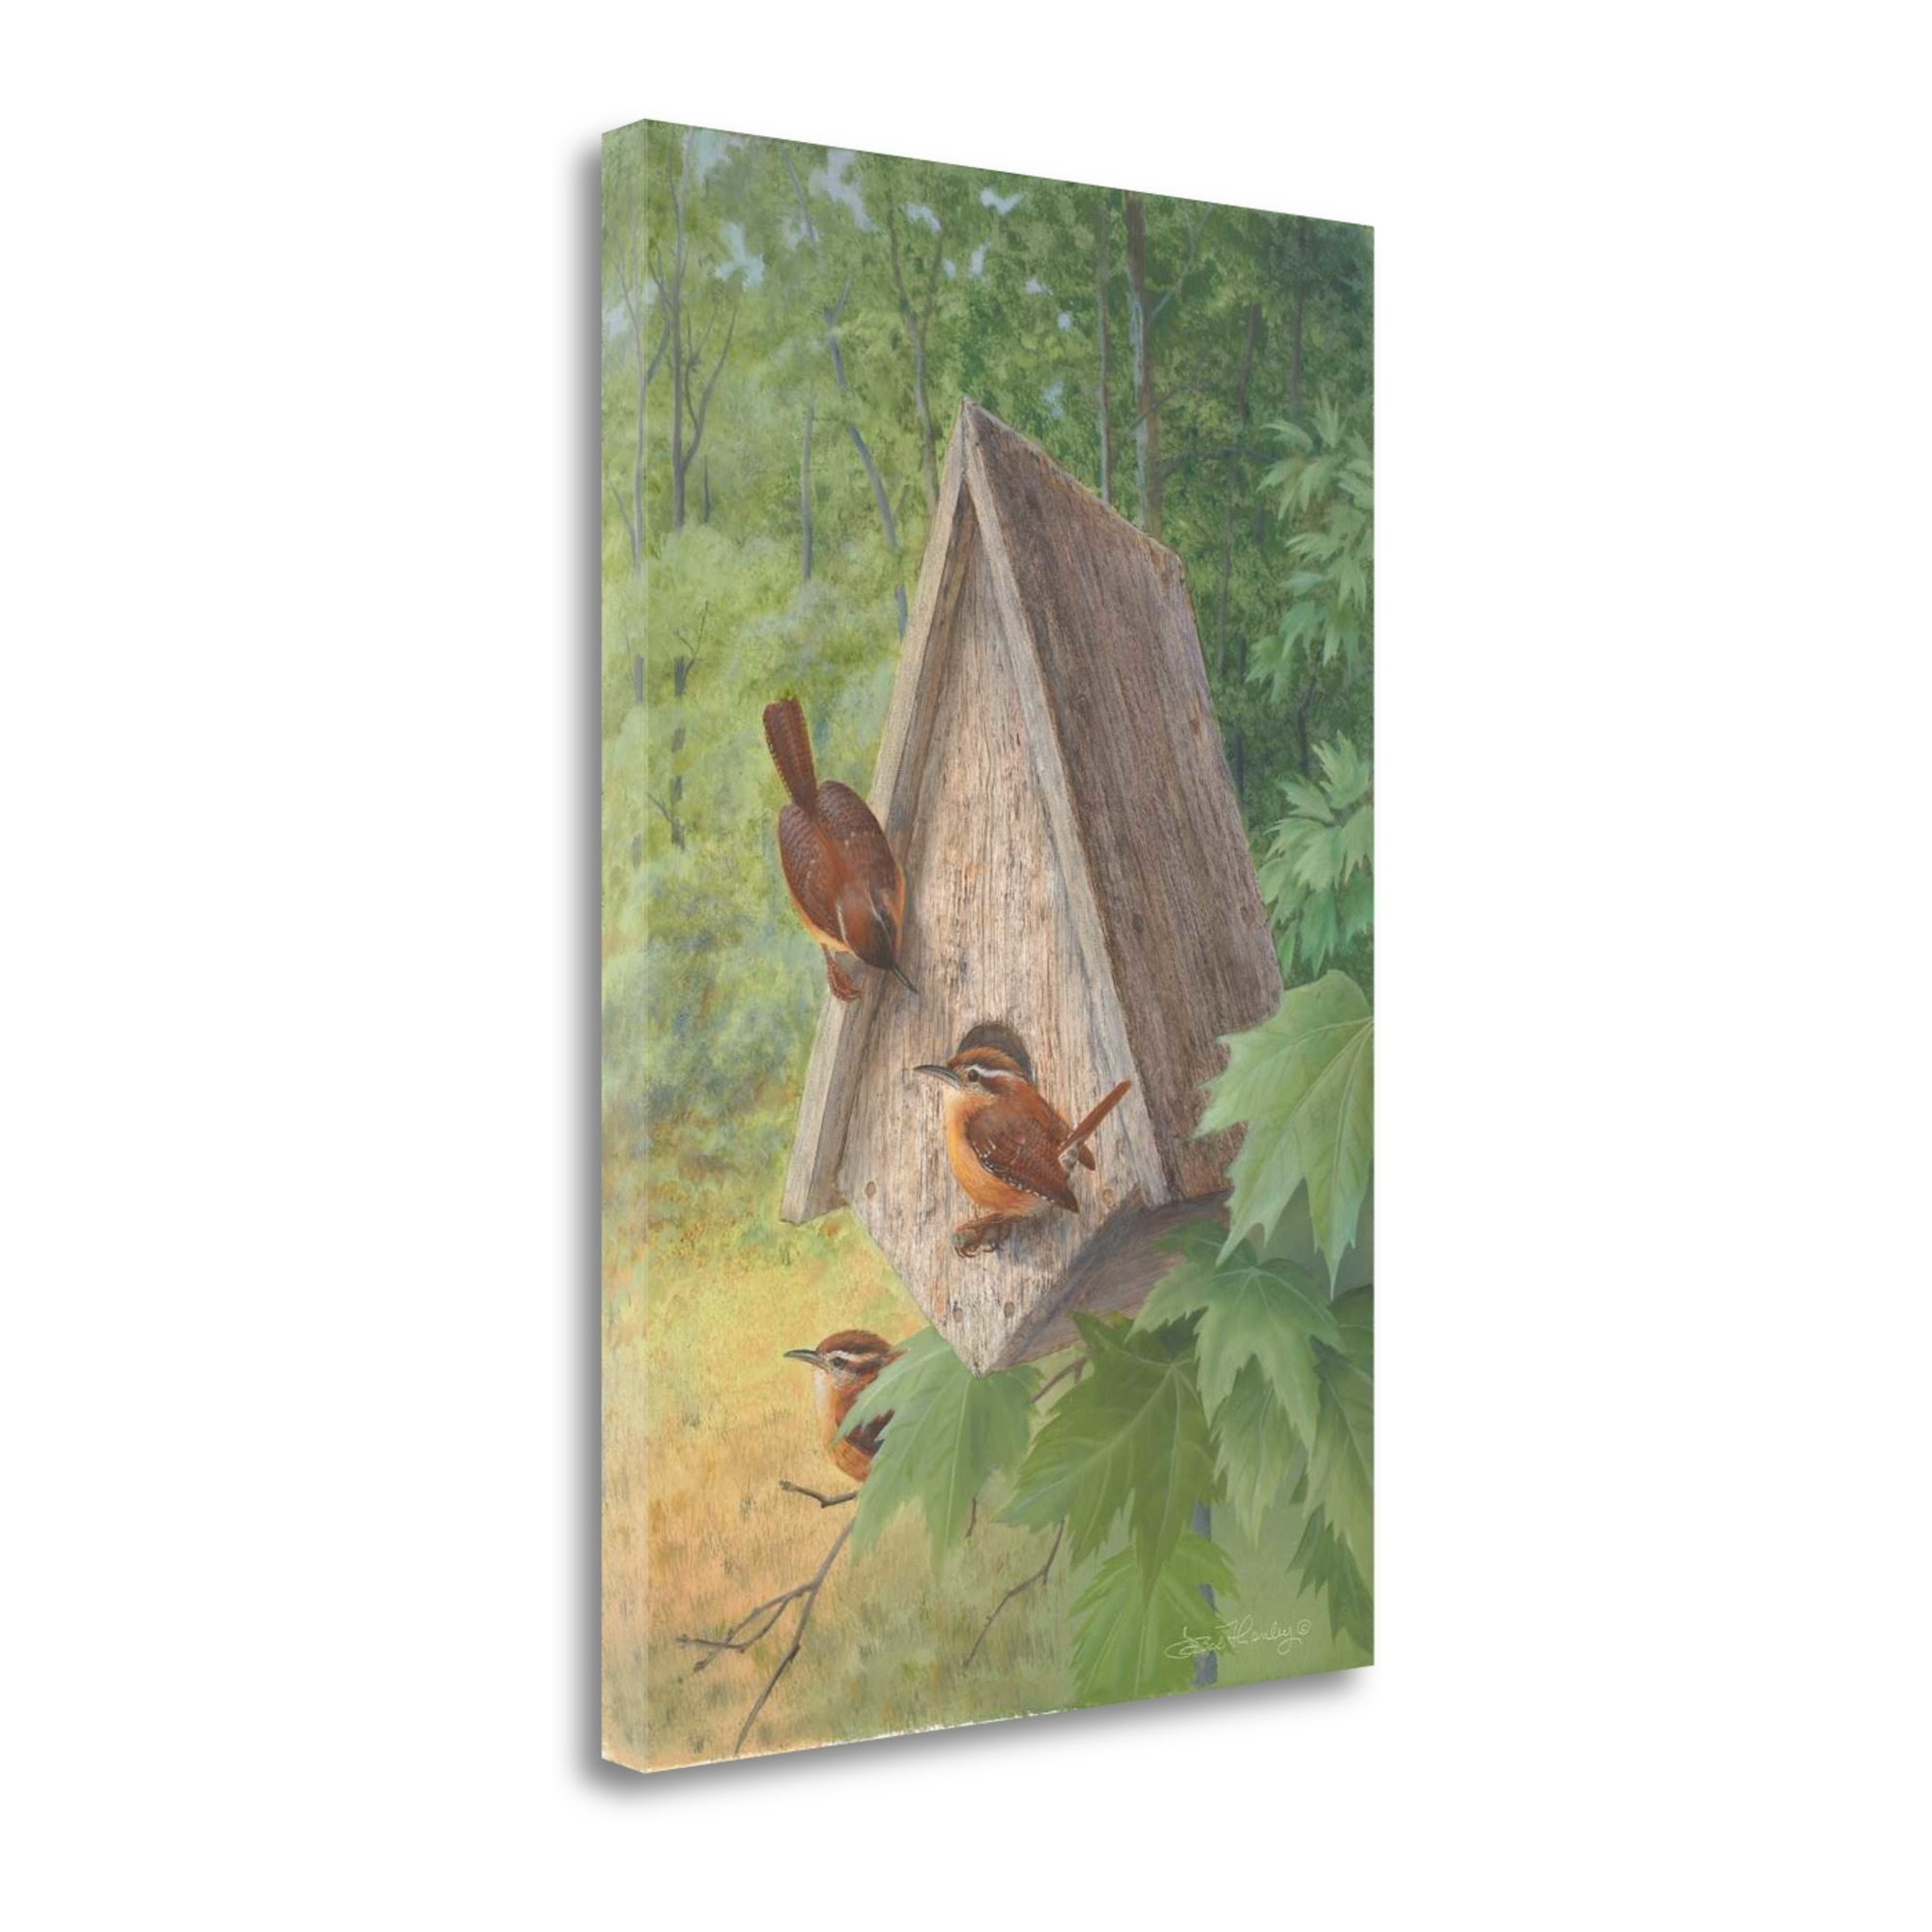 "Bird House By Bob Henley, 19"" x 28\"" Fine Art Giclee Print on Gallery Wrap Canvas, Ready to Hang"